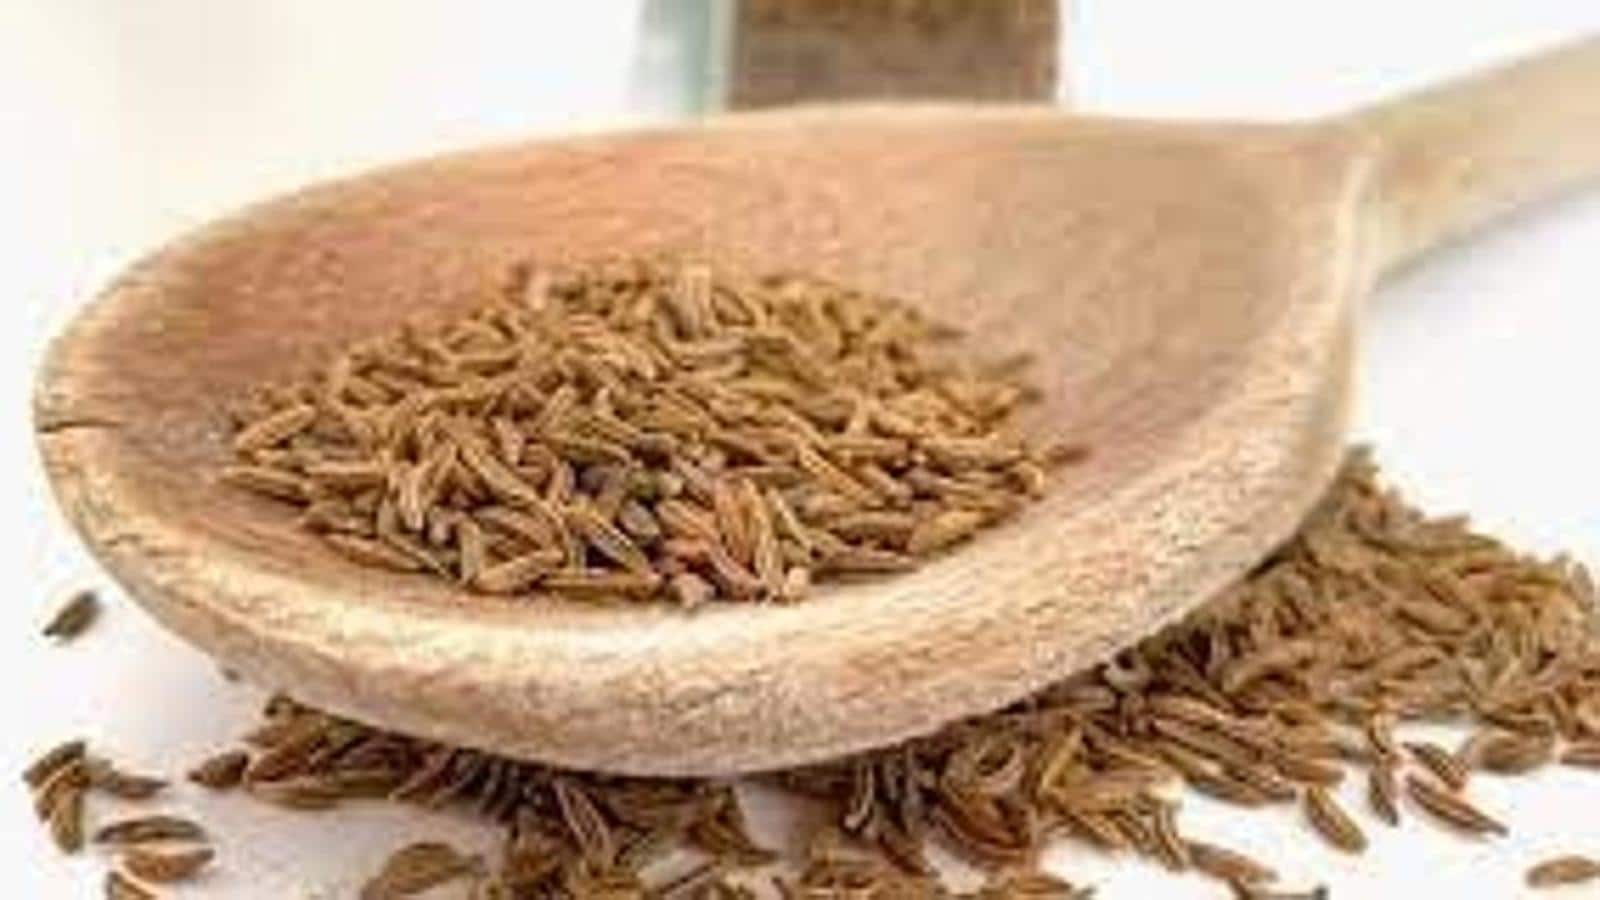 Tons of adulterated kala jeera mixed with rodent excreta, mobil oil, seized in Kolkata